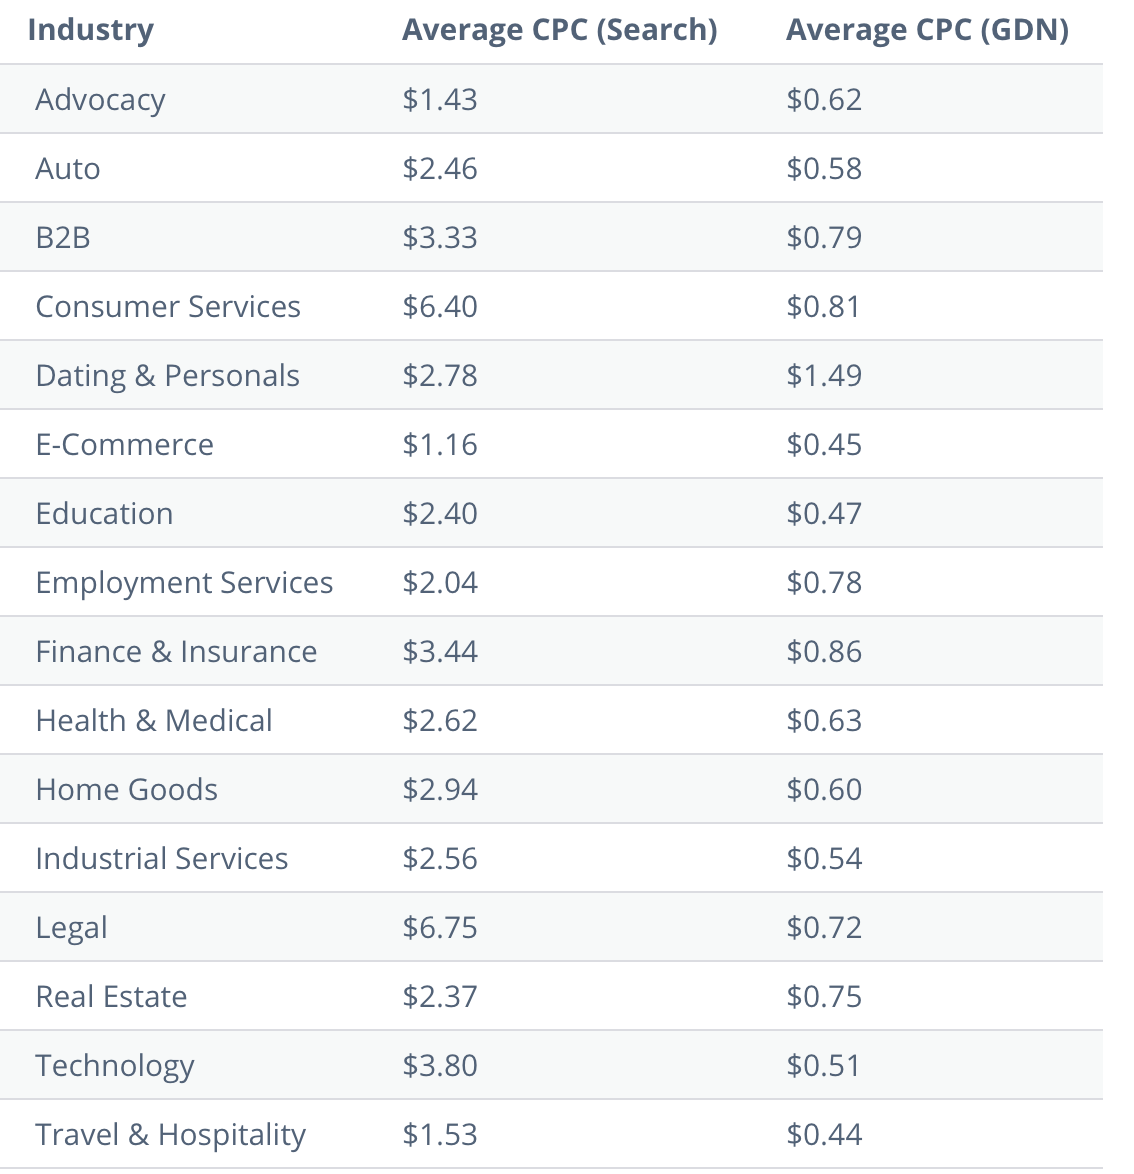 Google Ads CPC benchmark by industry from WordStream